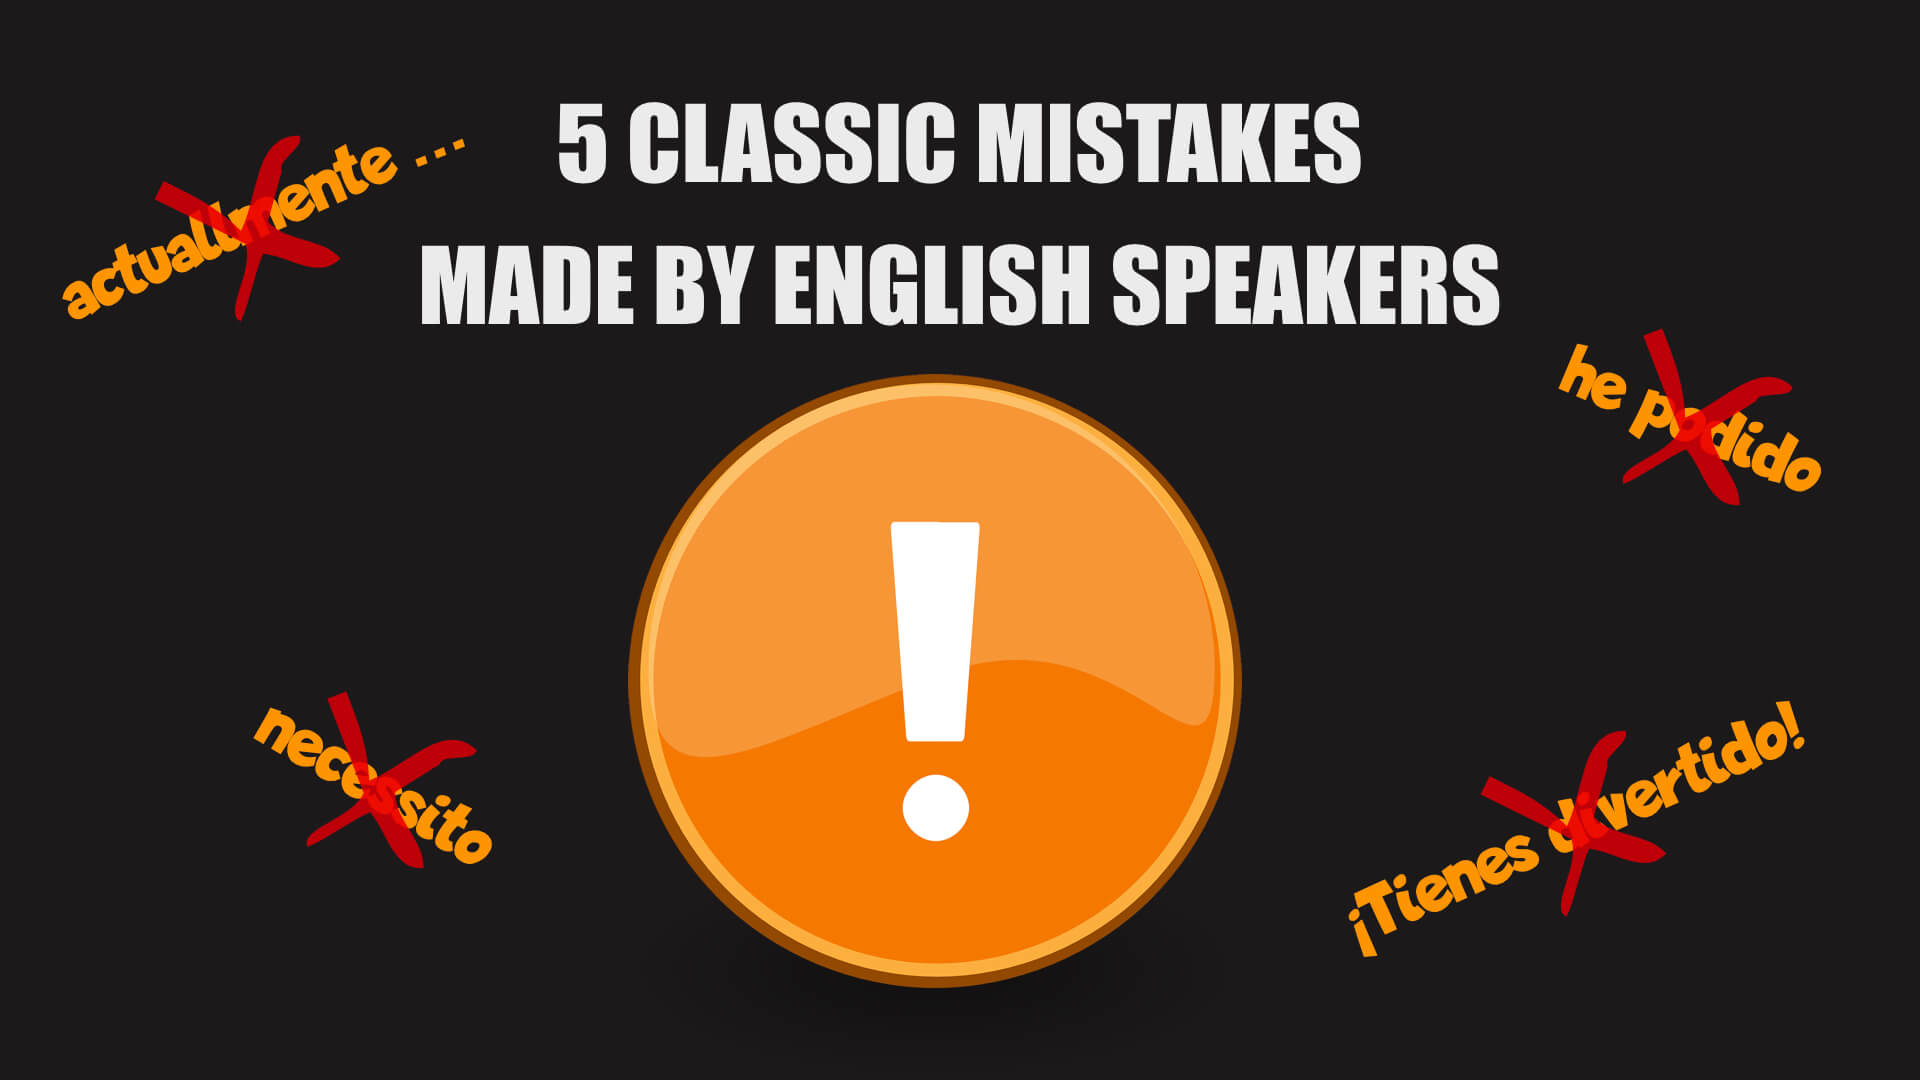 20 Classic Spanish Mistakes made by English Speakers